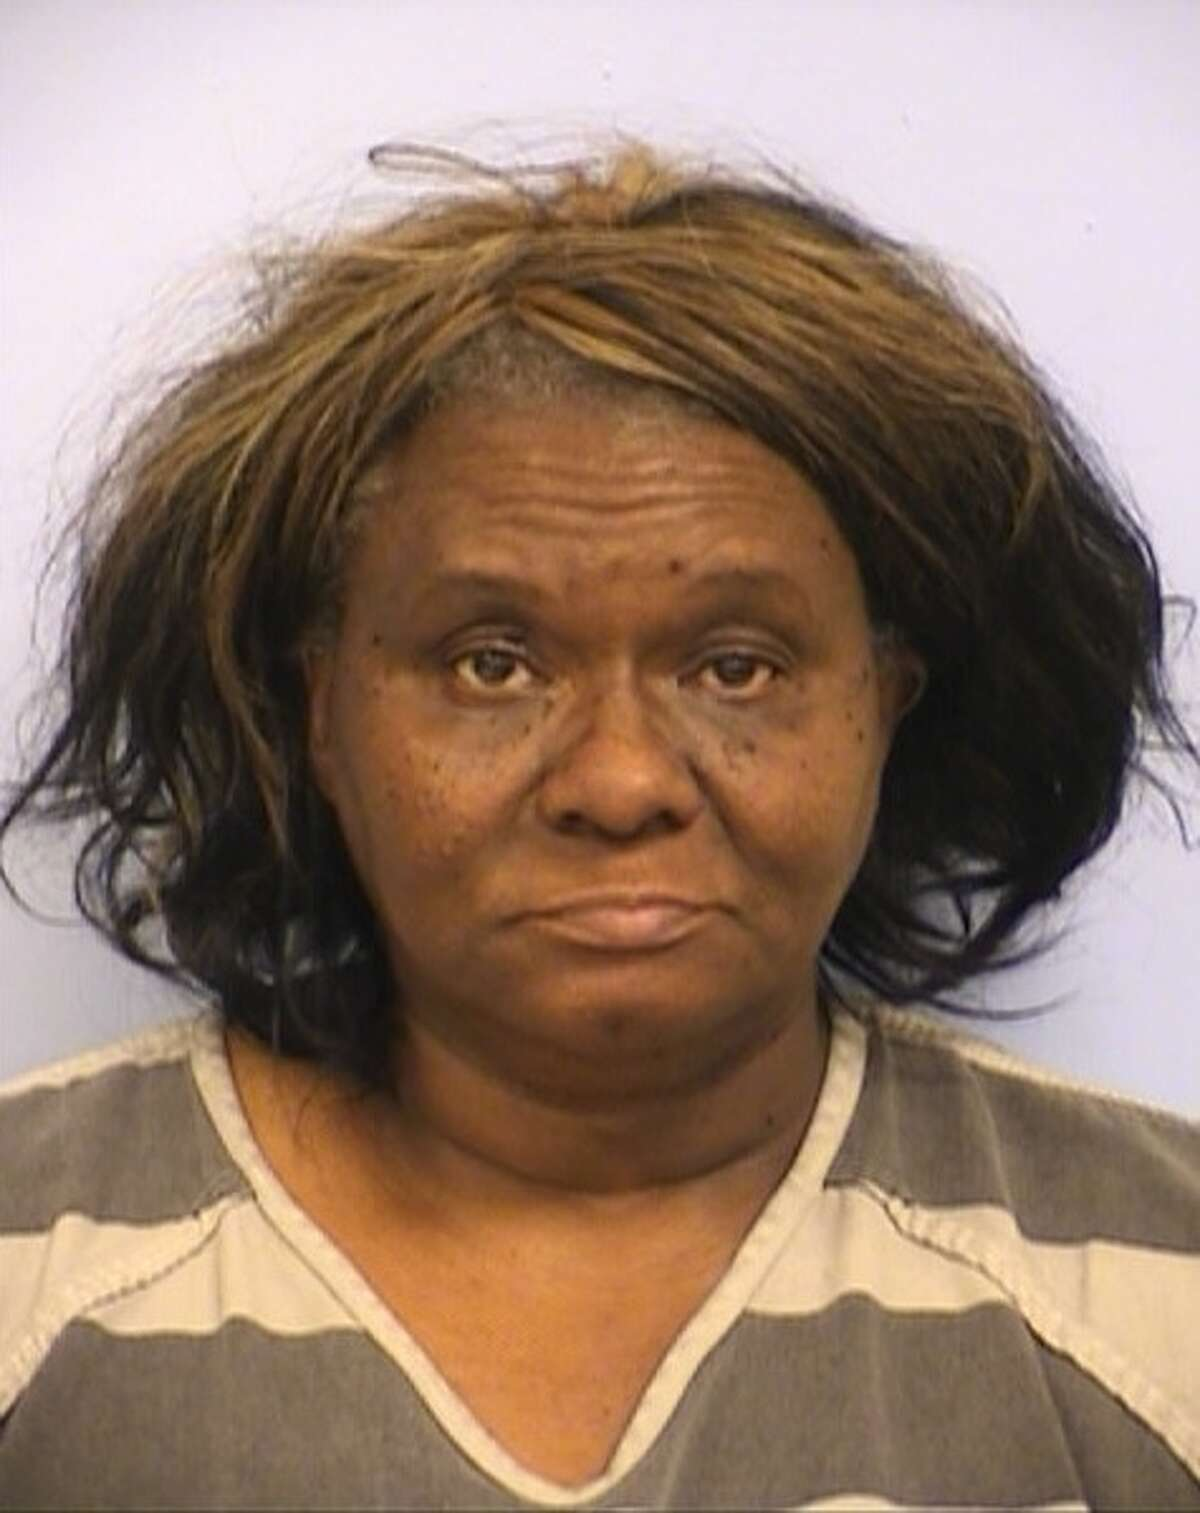 Ethel Jean Banks, 61, has been charged with aggravated assault - family violence, a second-degree felony punishable by a maximum 20-year prison sentence. She has been accused of pulling a knife on her brother and threatening to kill him after he ate her barbecue ribs.